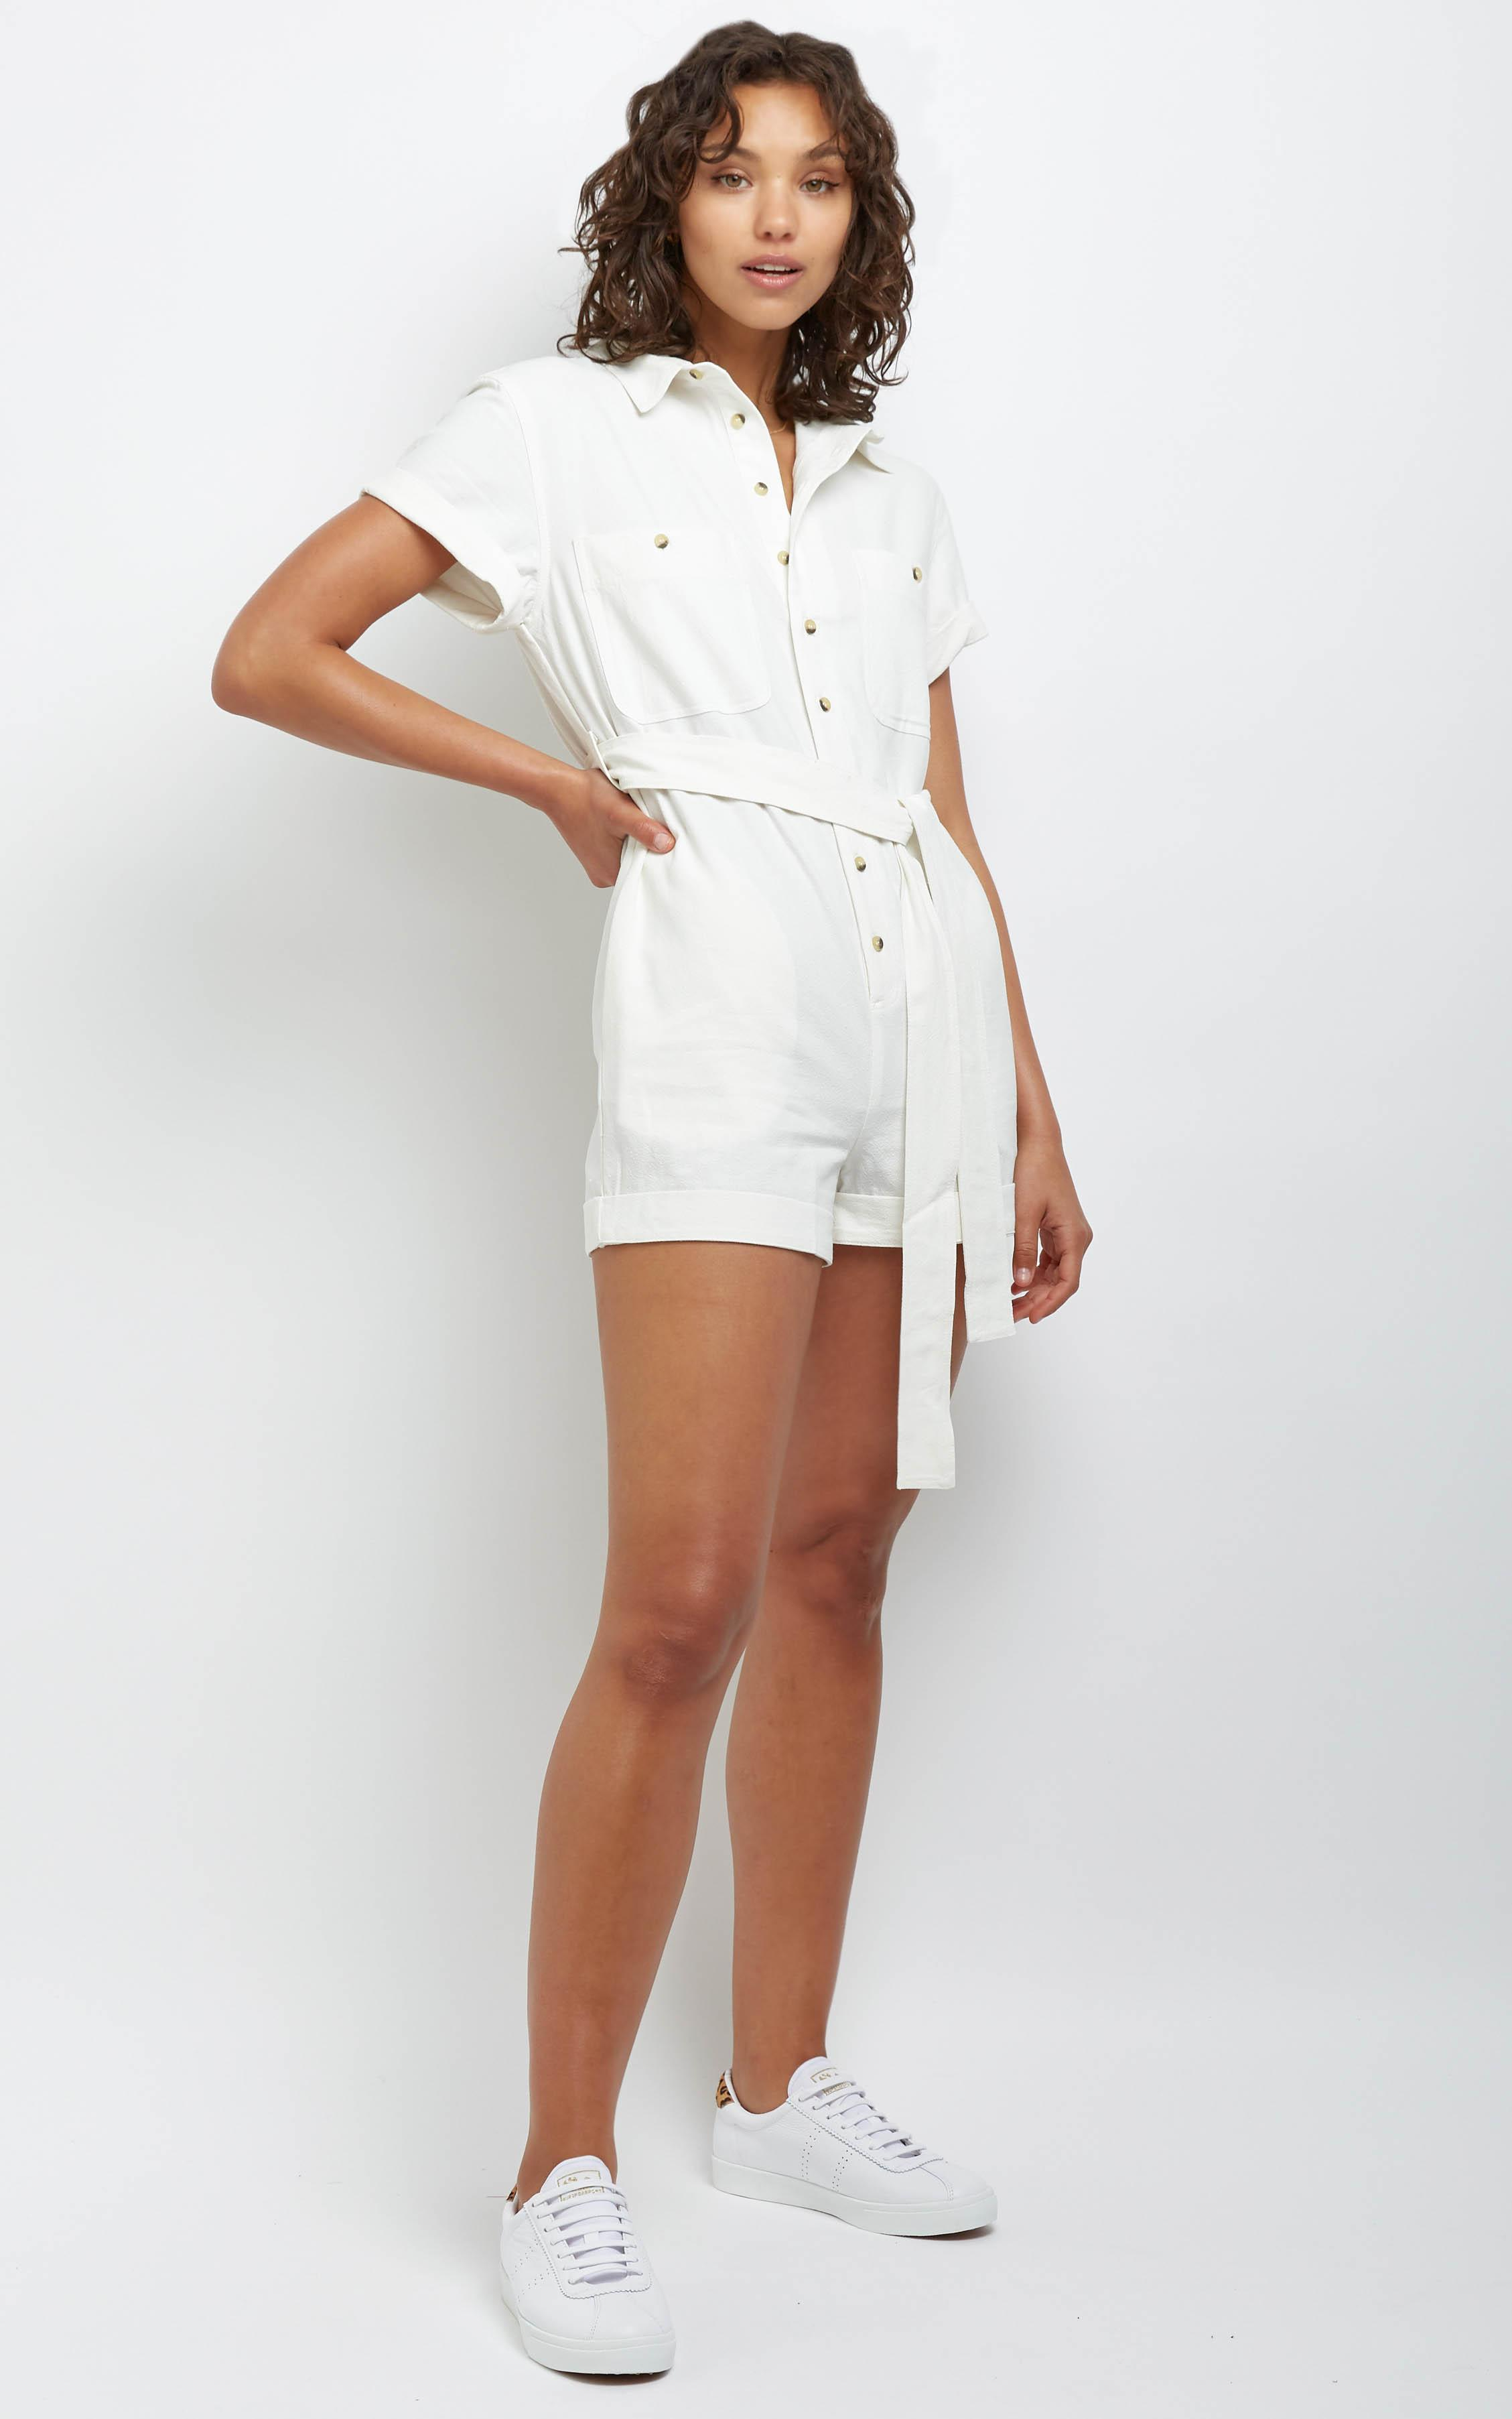 Rollas - Horizon Playsuit in Vintage White - 14 (XL), White, hi-res image number null